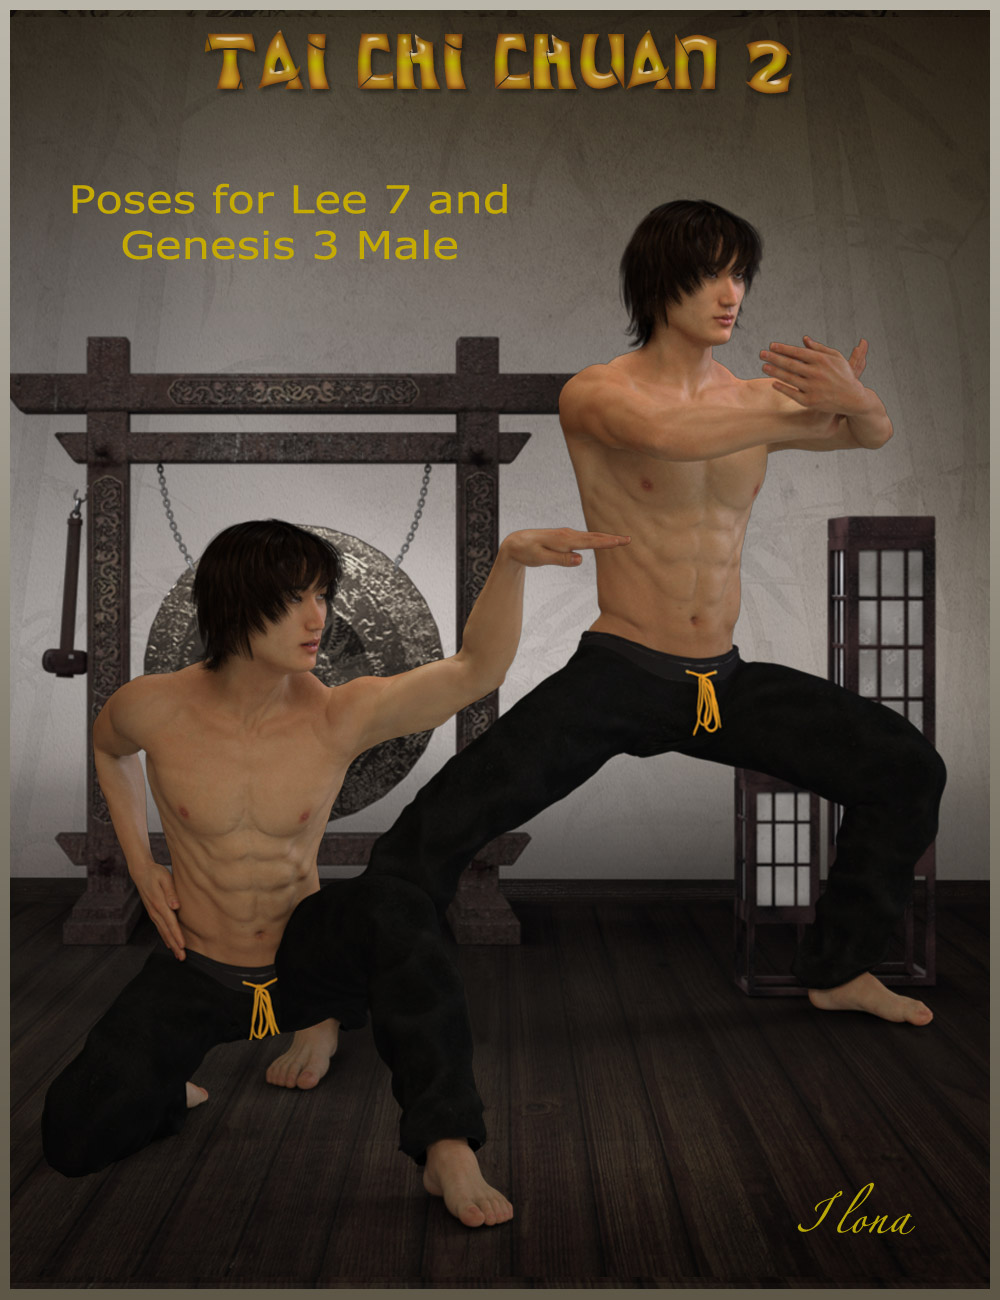 Tai Chi Chuan Poses for Lee 7 and Genesis 3 Male by: ilona, 3D Models by Daz 3D